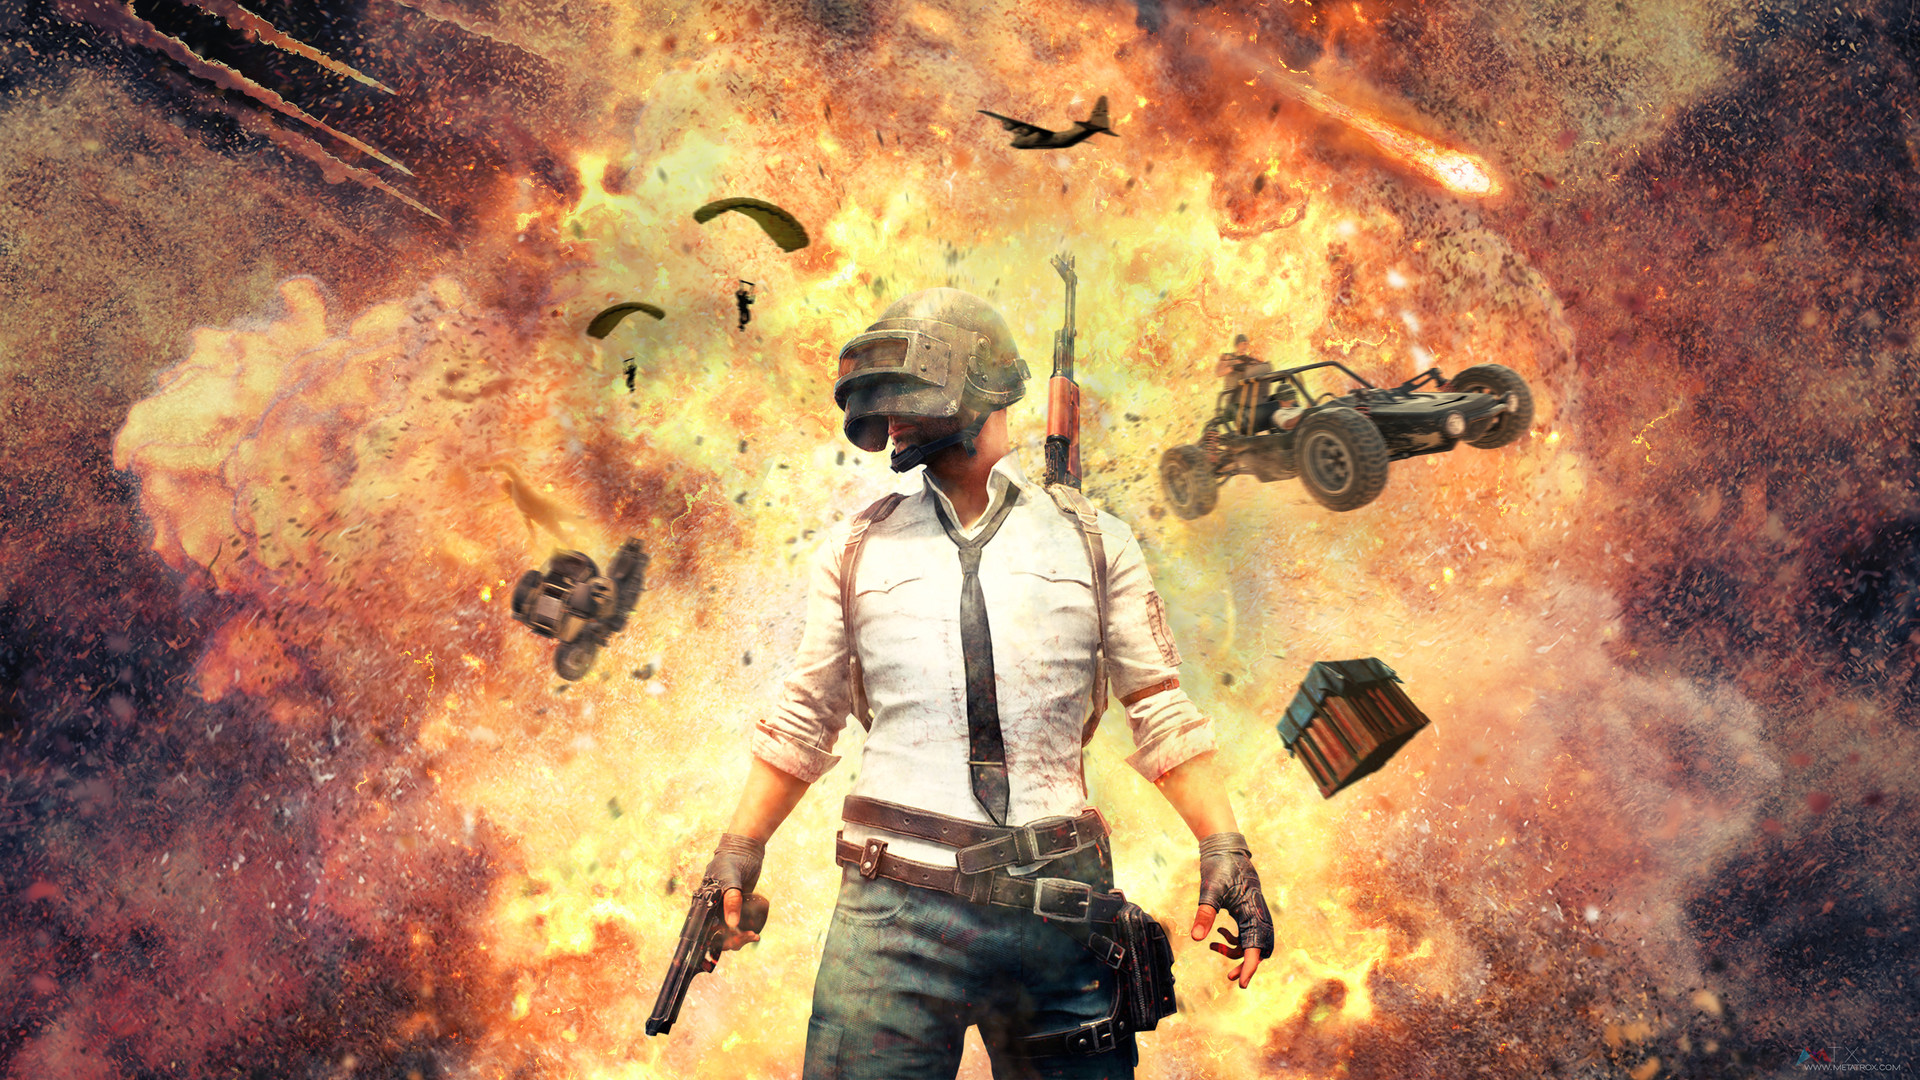 Hd 1080p Pubg Wallpapers Pubattlegrounds: PUBG Wallpapers